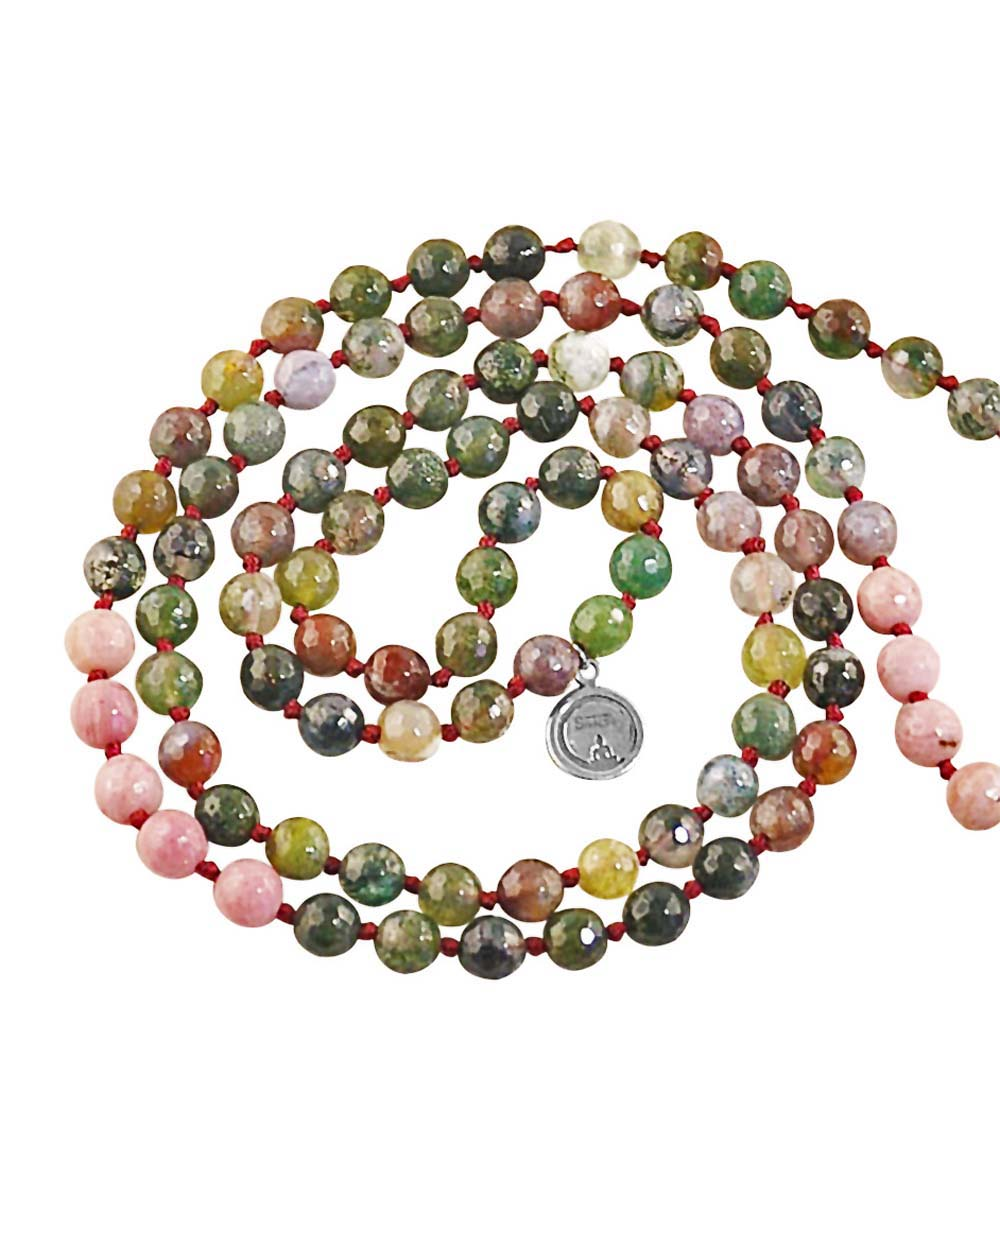 Earth Element Jasper and Rhodonite 108 Beads Mala with Silver Eye Guru Bead